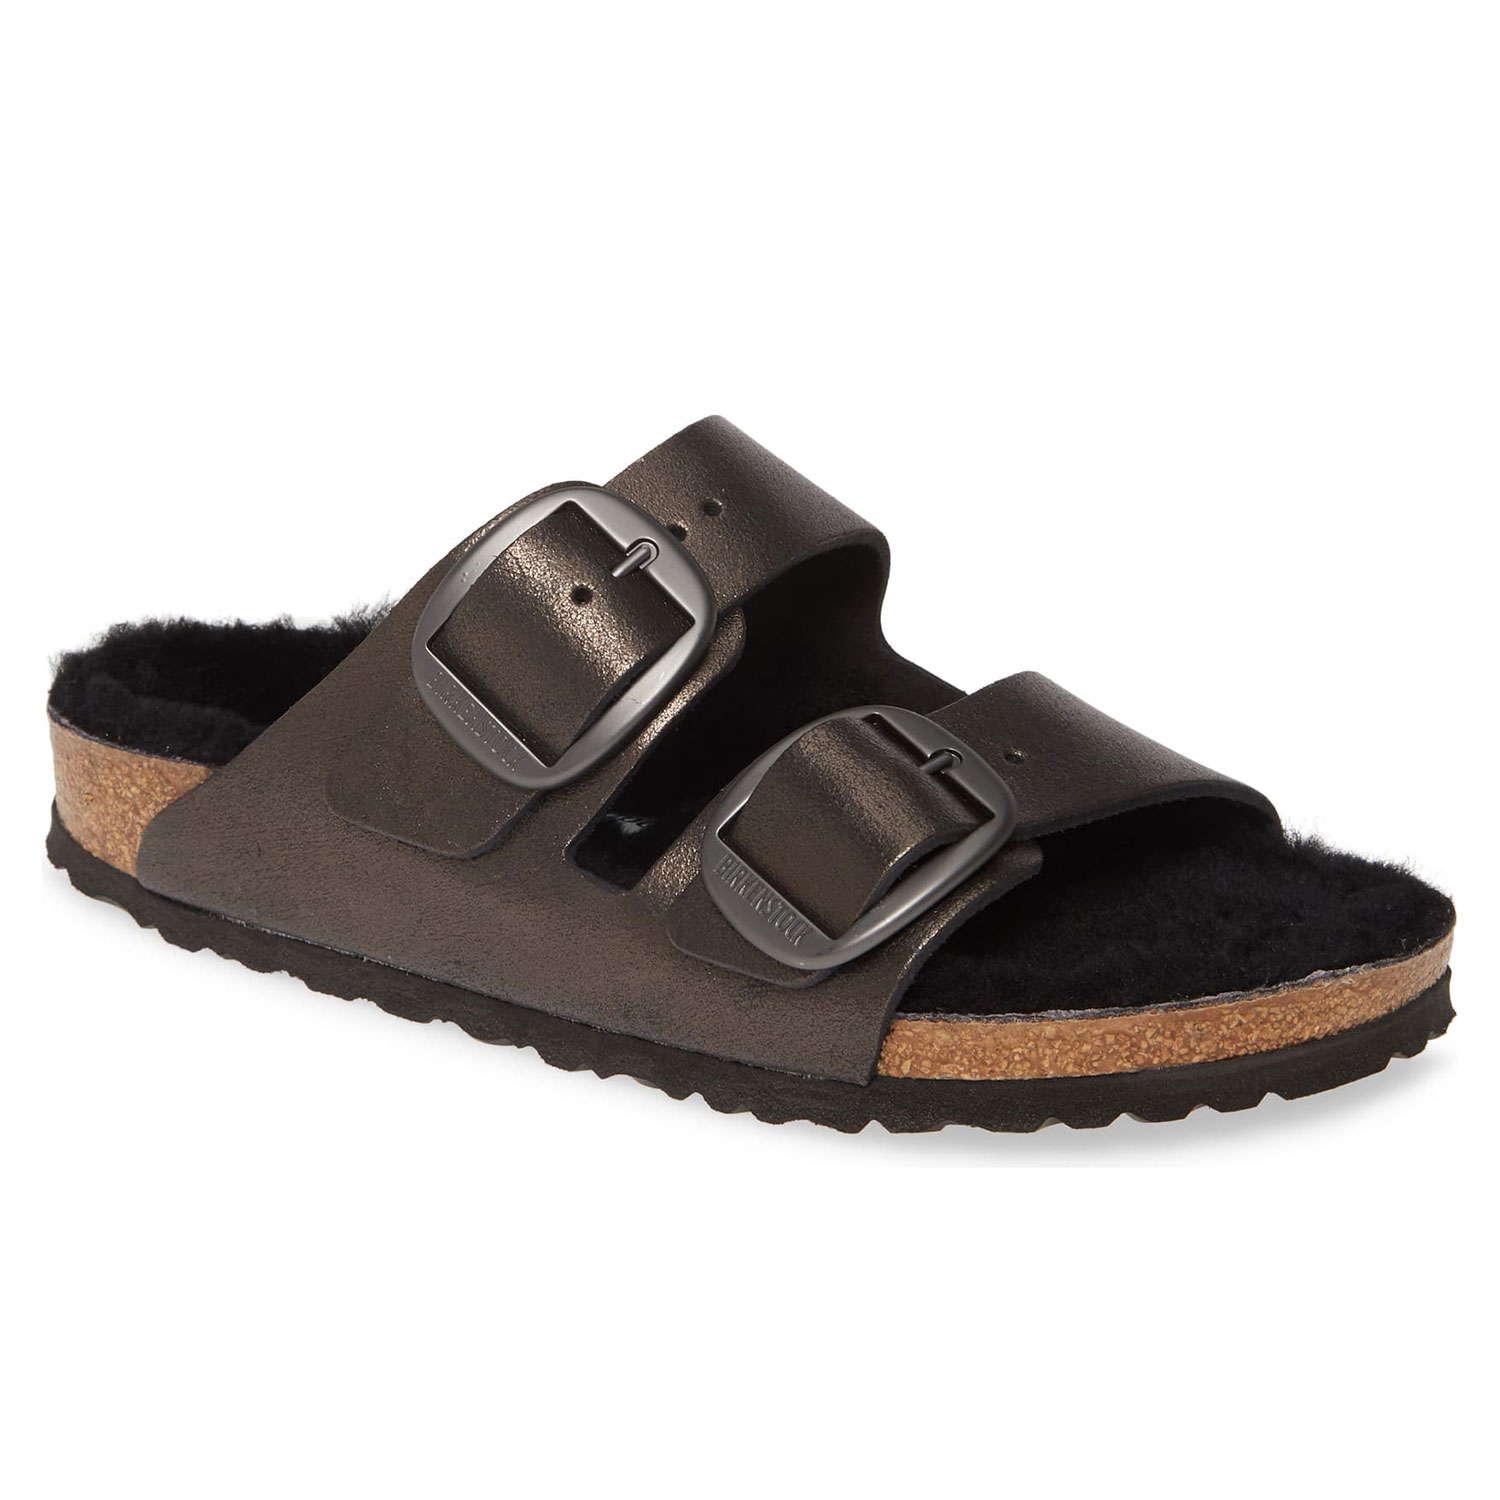 Birkenstock Perfect Pairs Arizona Big Buckle Sandal with Genuine Shearling Lining